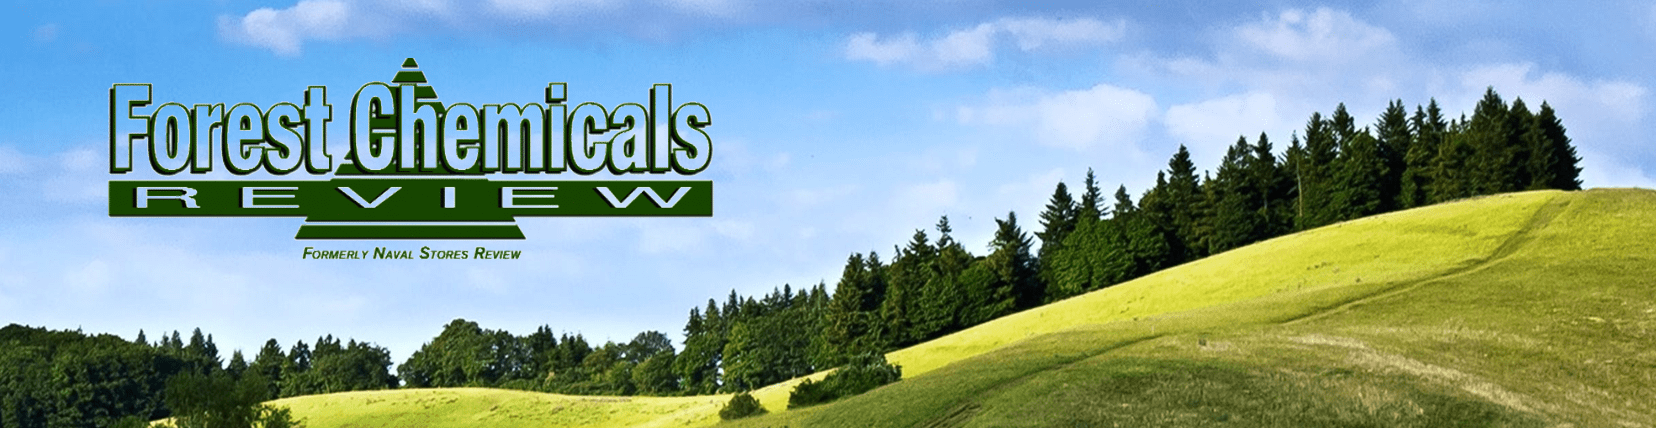 Forest Chemicals Review